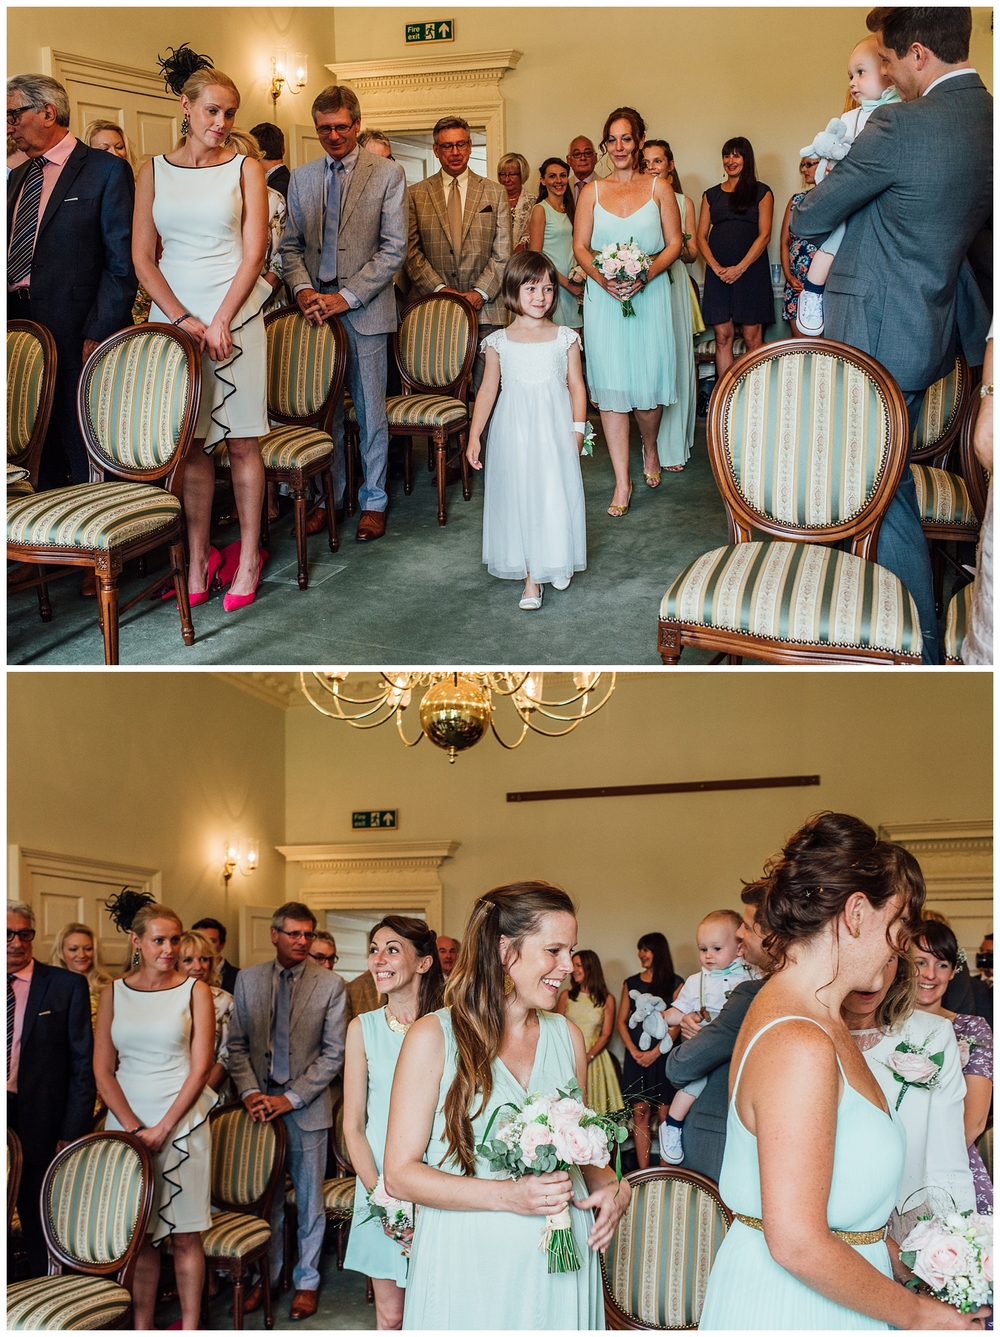 Nikki_Cooper_Photography_Lucy&Scott_Wedding_Photos_The_Crab_Tree_Pub_Horsham_1047.jpg